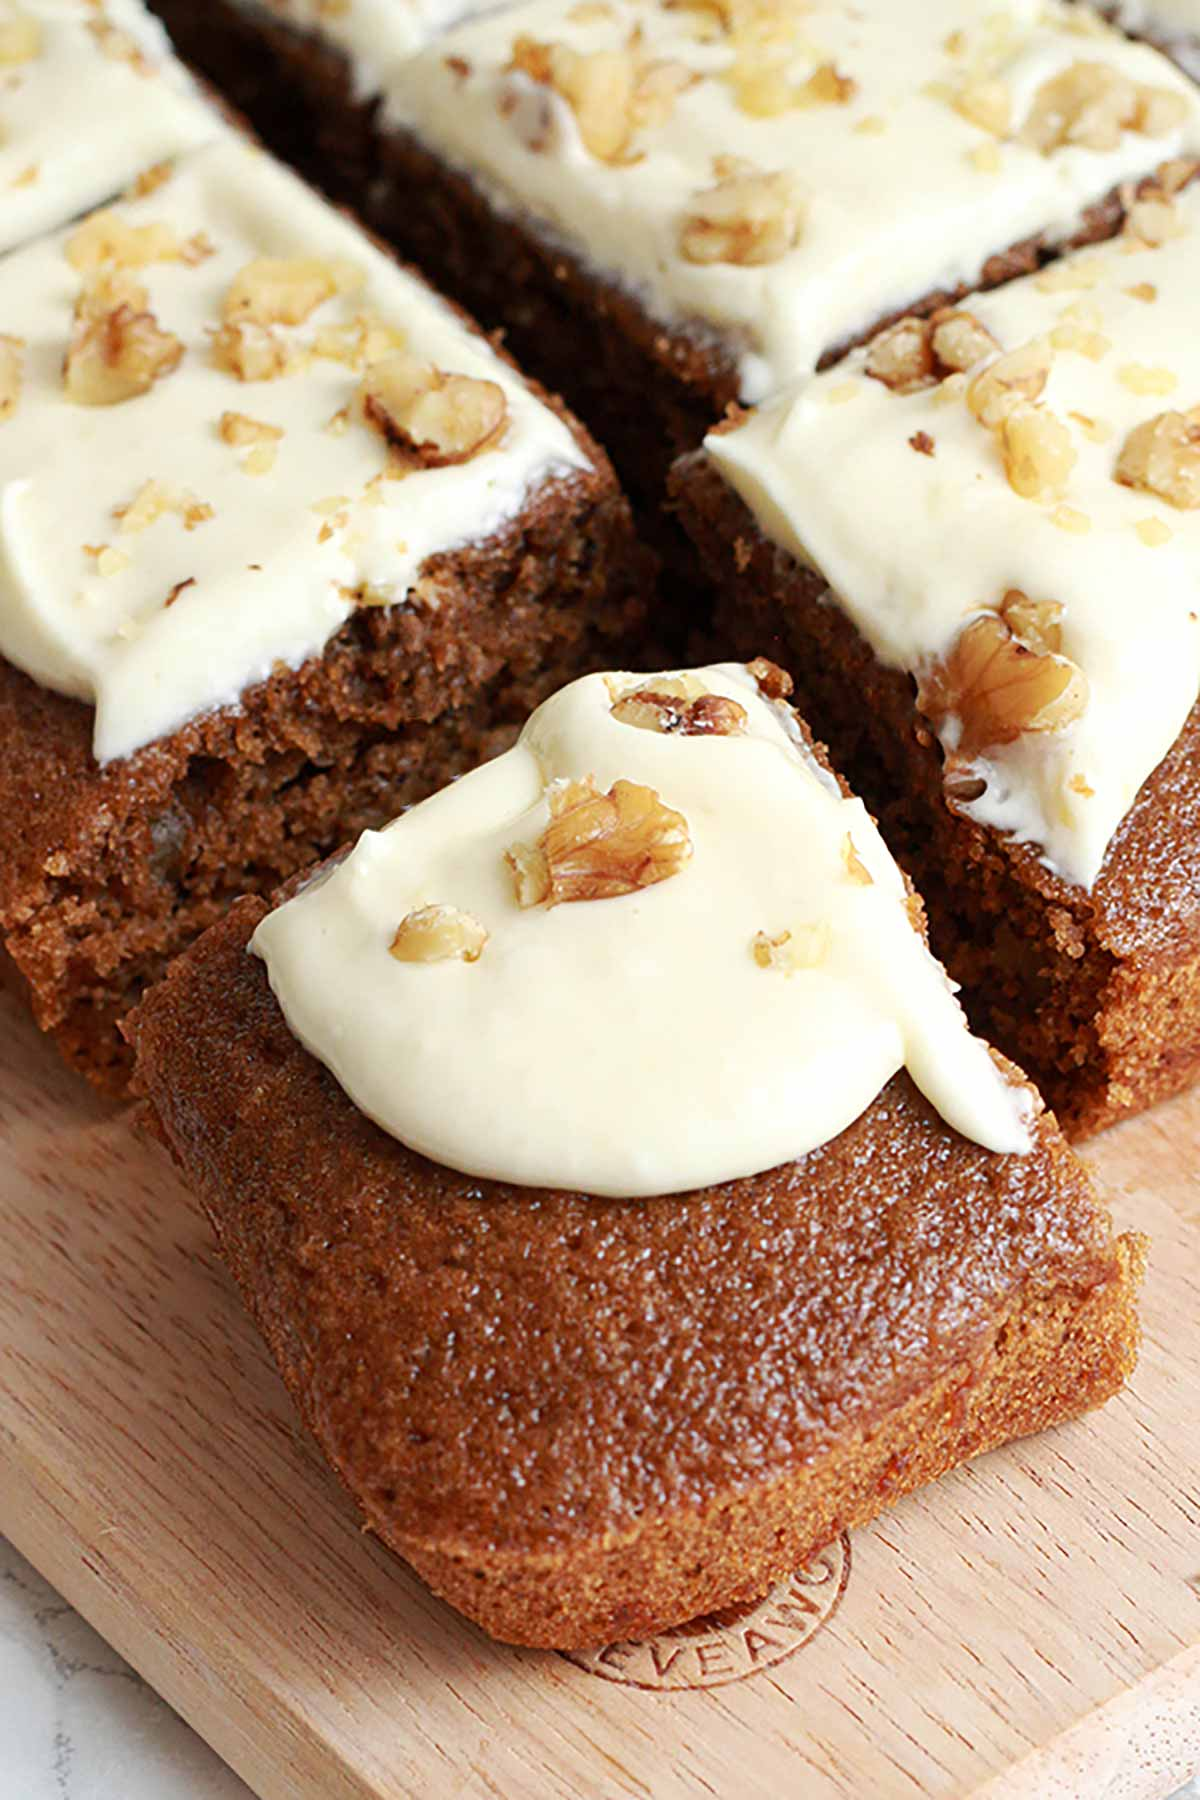 Coffee Cake With Cream Cheese Frosting And Walnuts On Top